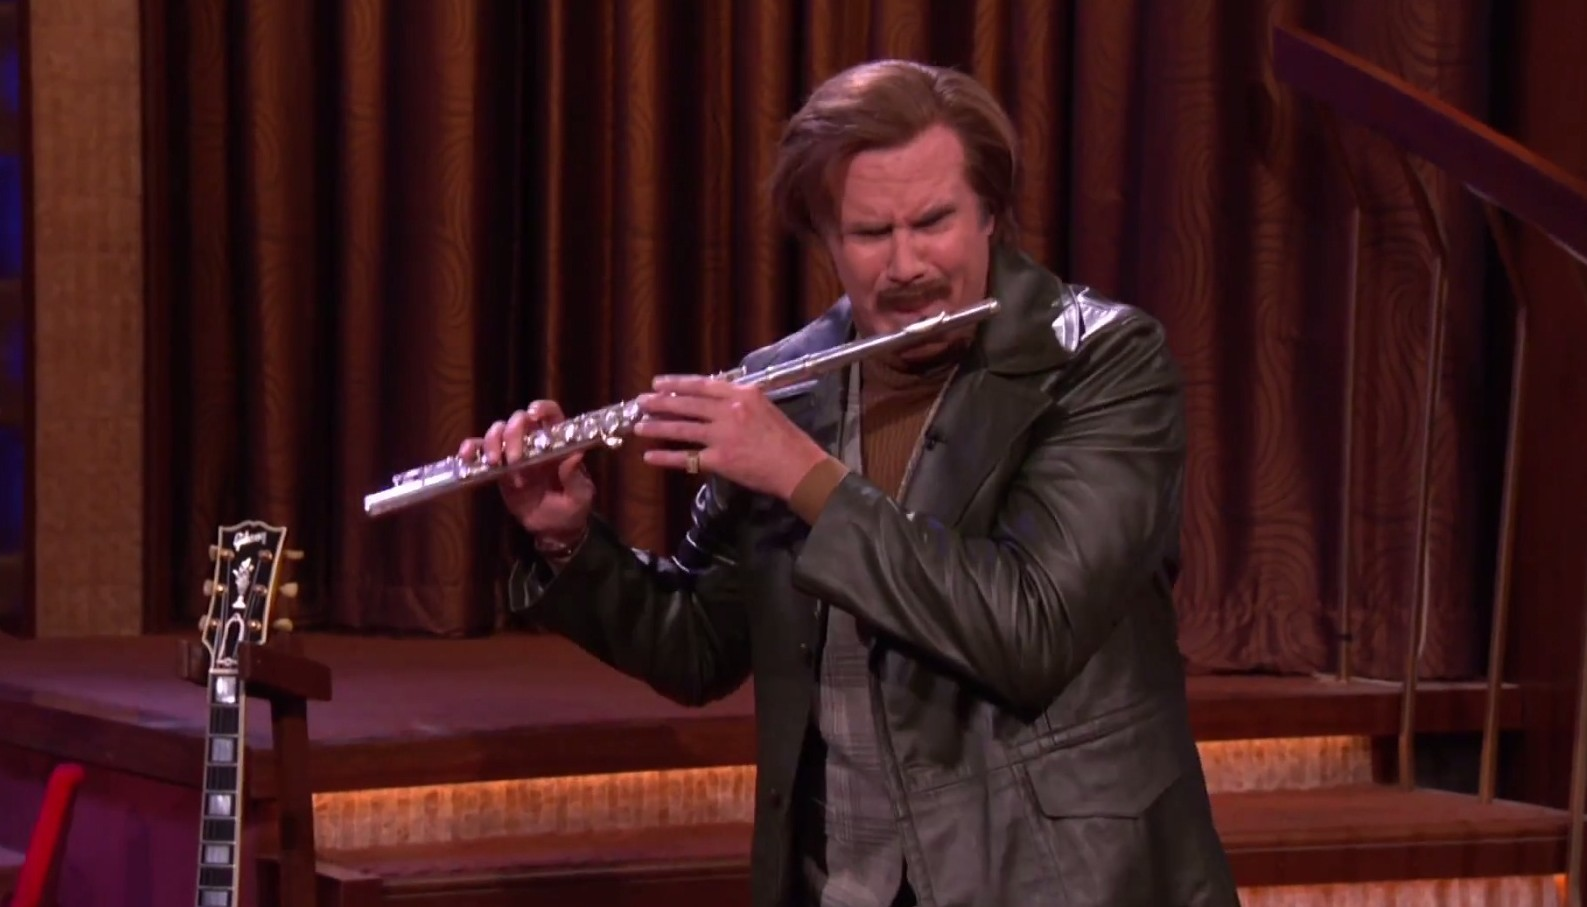 It wouldn't be a Ron Burgundy performance without a jazz flute solo (Picture: Conan O'Brien/YouTube)